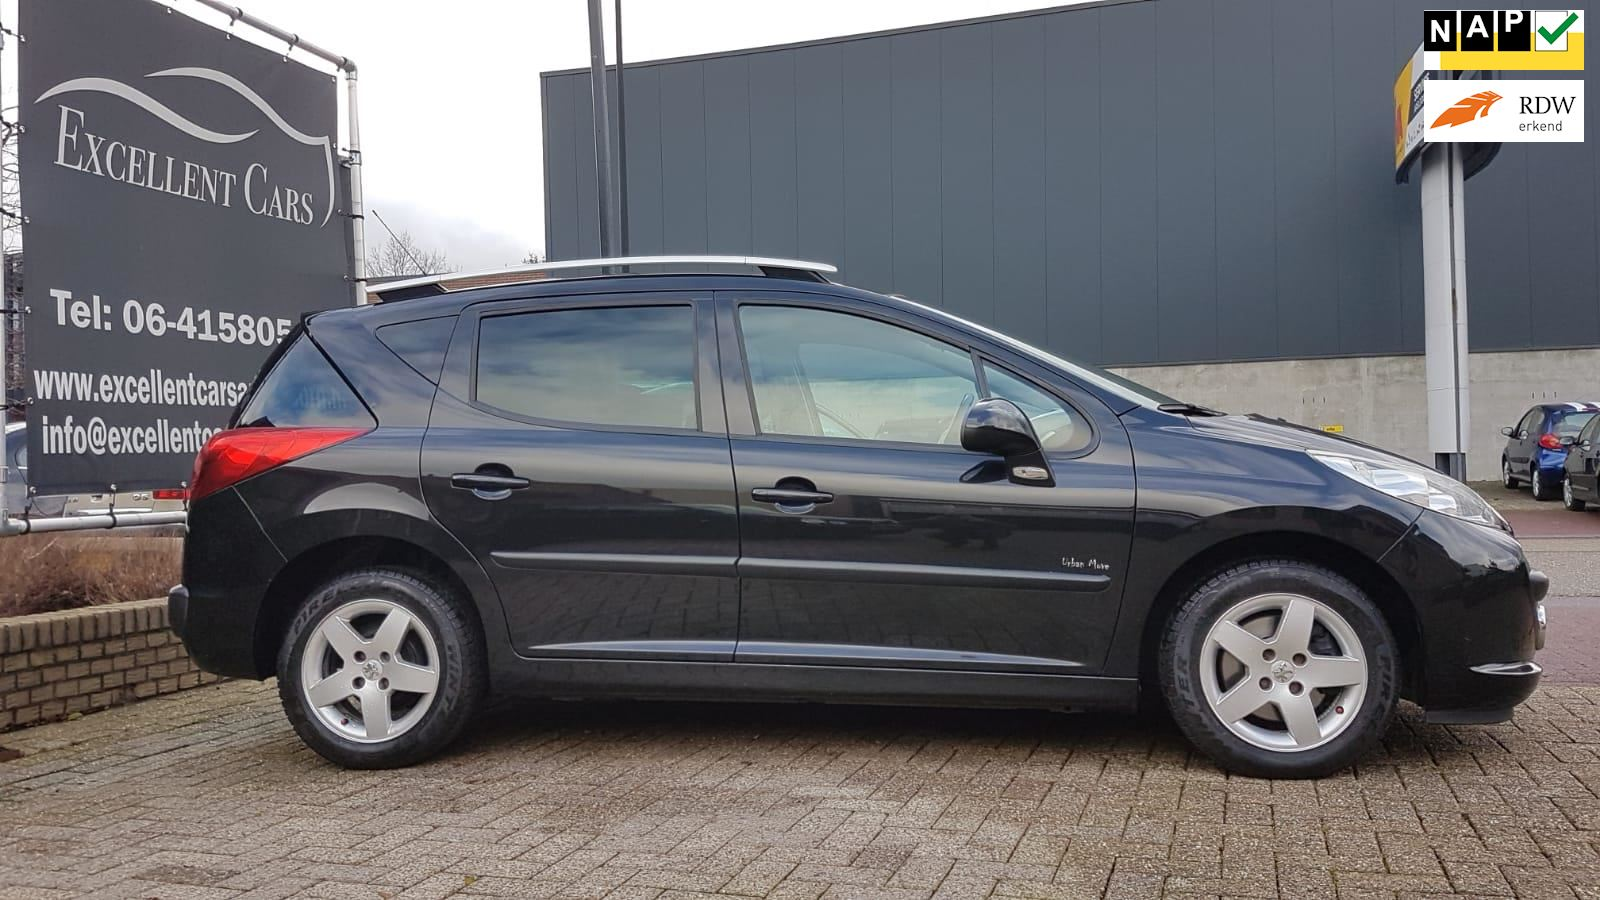 Peugeot 207 SW occasion - Excellent Cars